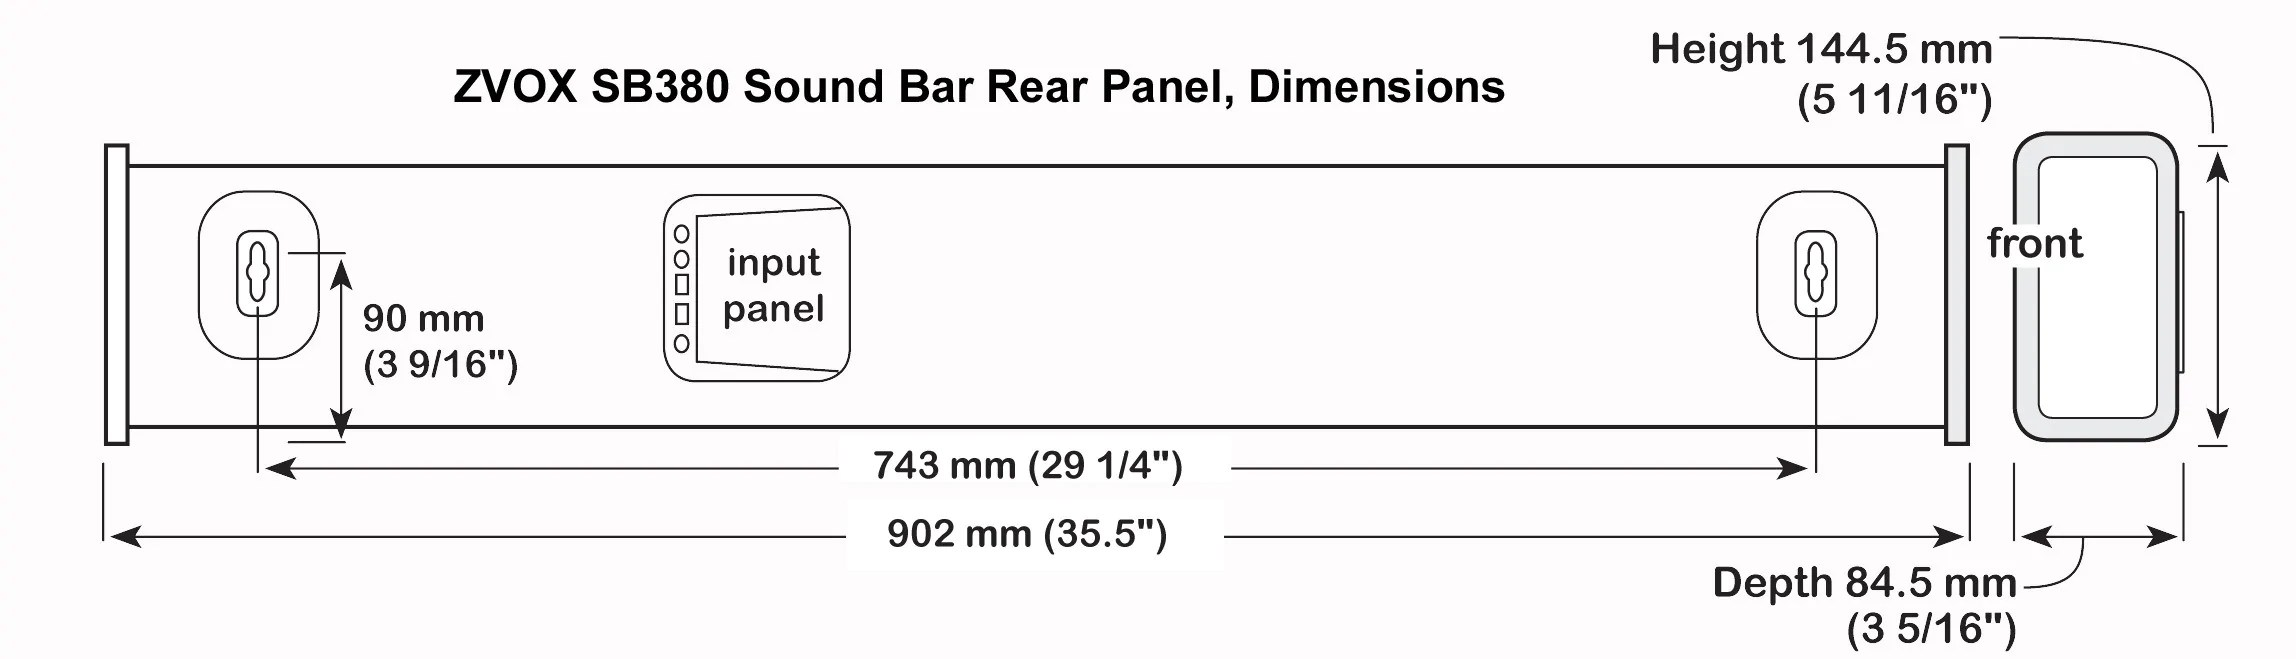 small resolution of click here to download sb380 sound bar back panel illustration and dimensions